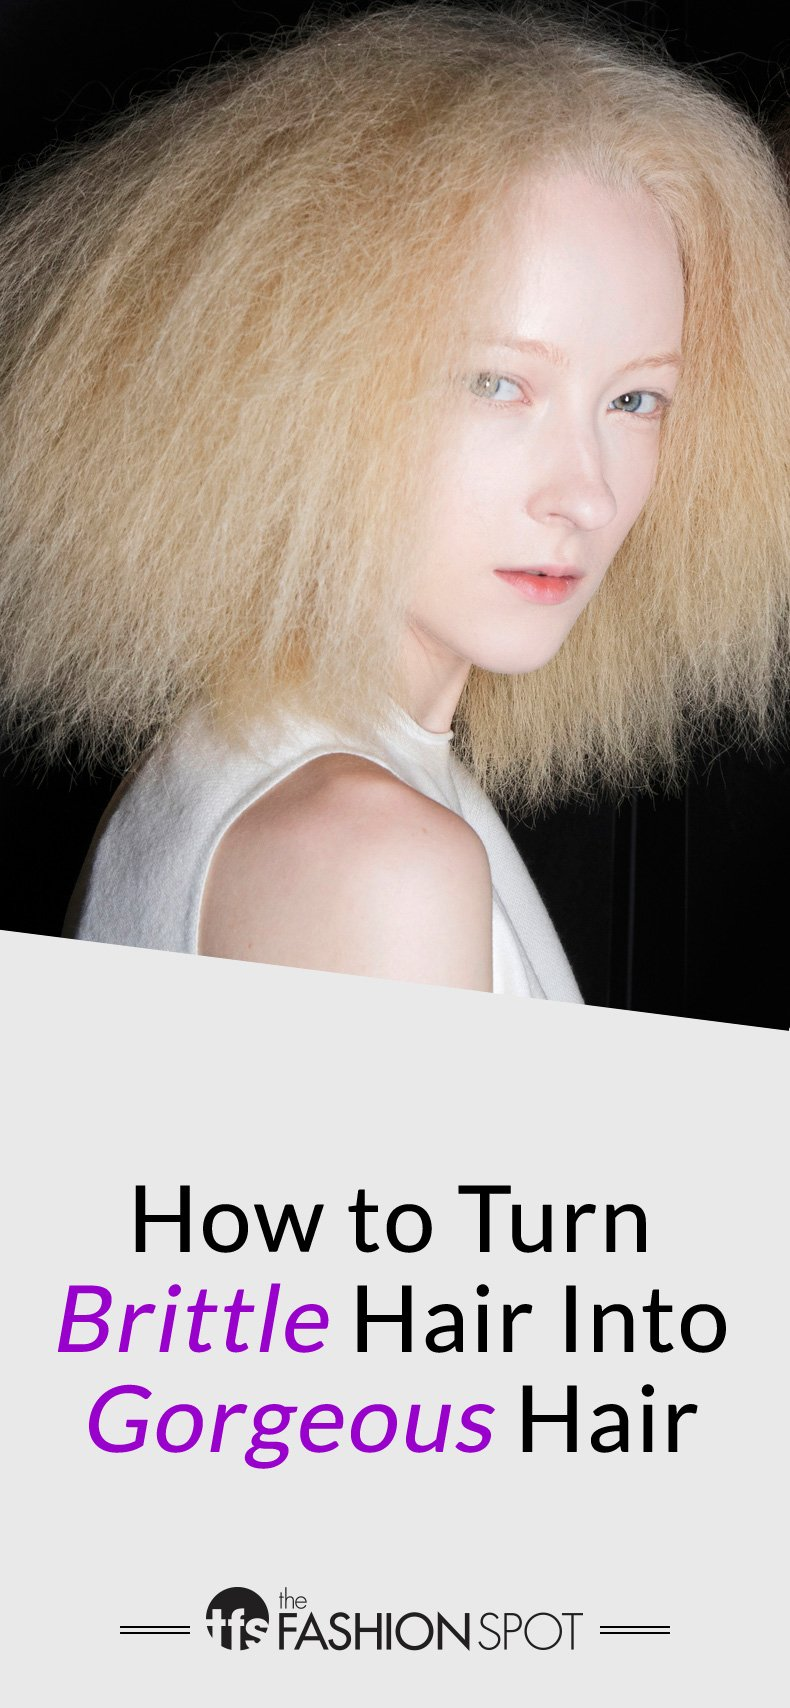 How to Turn Dry, Brittle Hair Into Gorgeous Hair